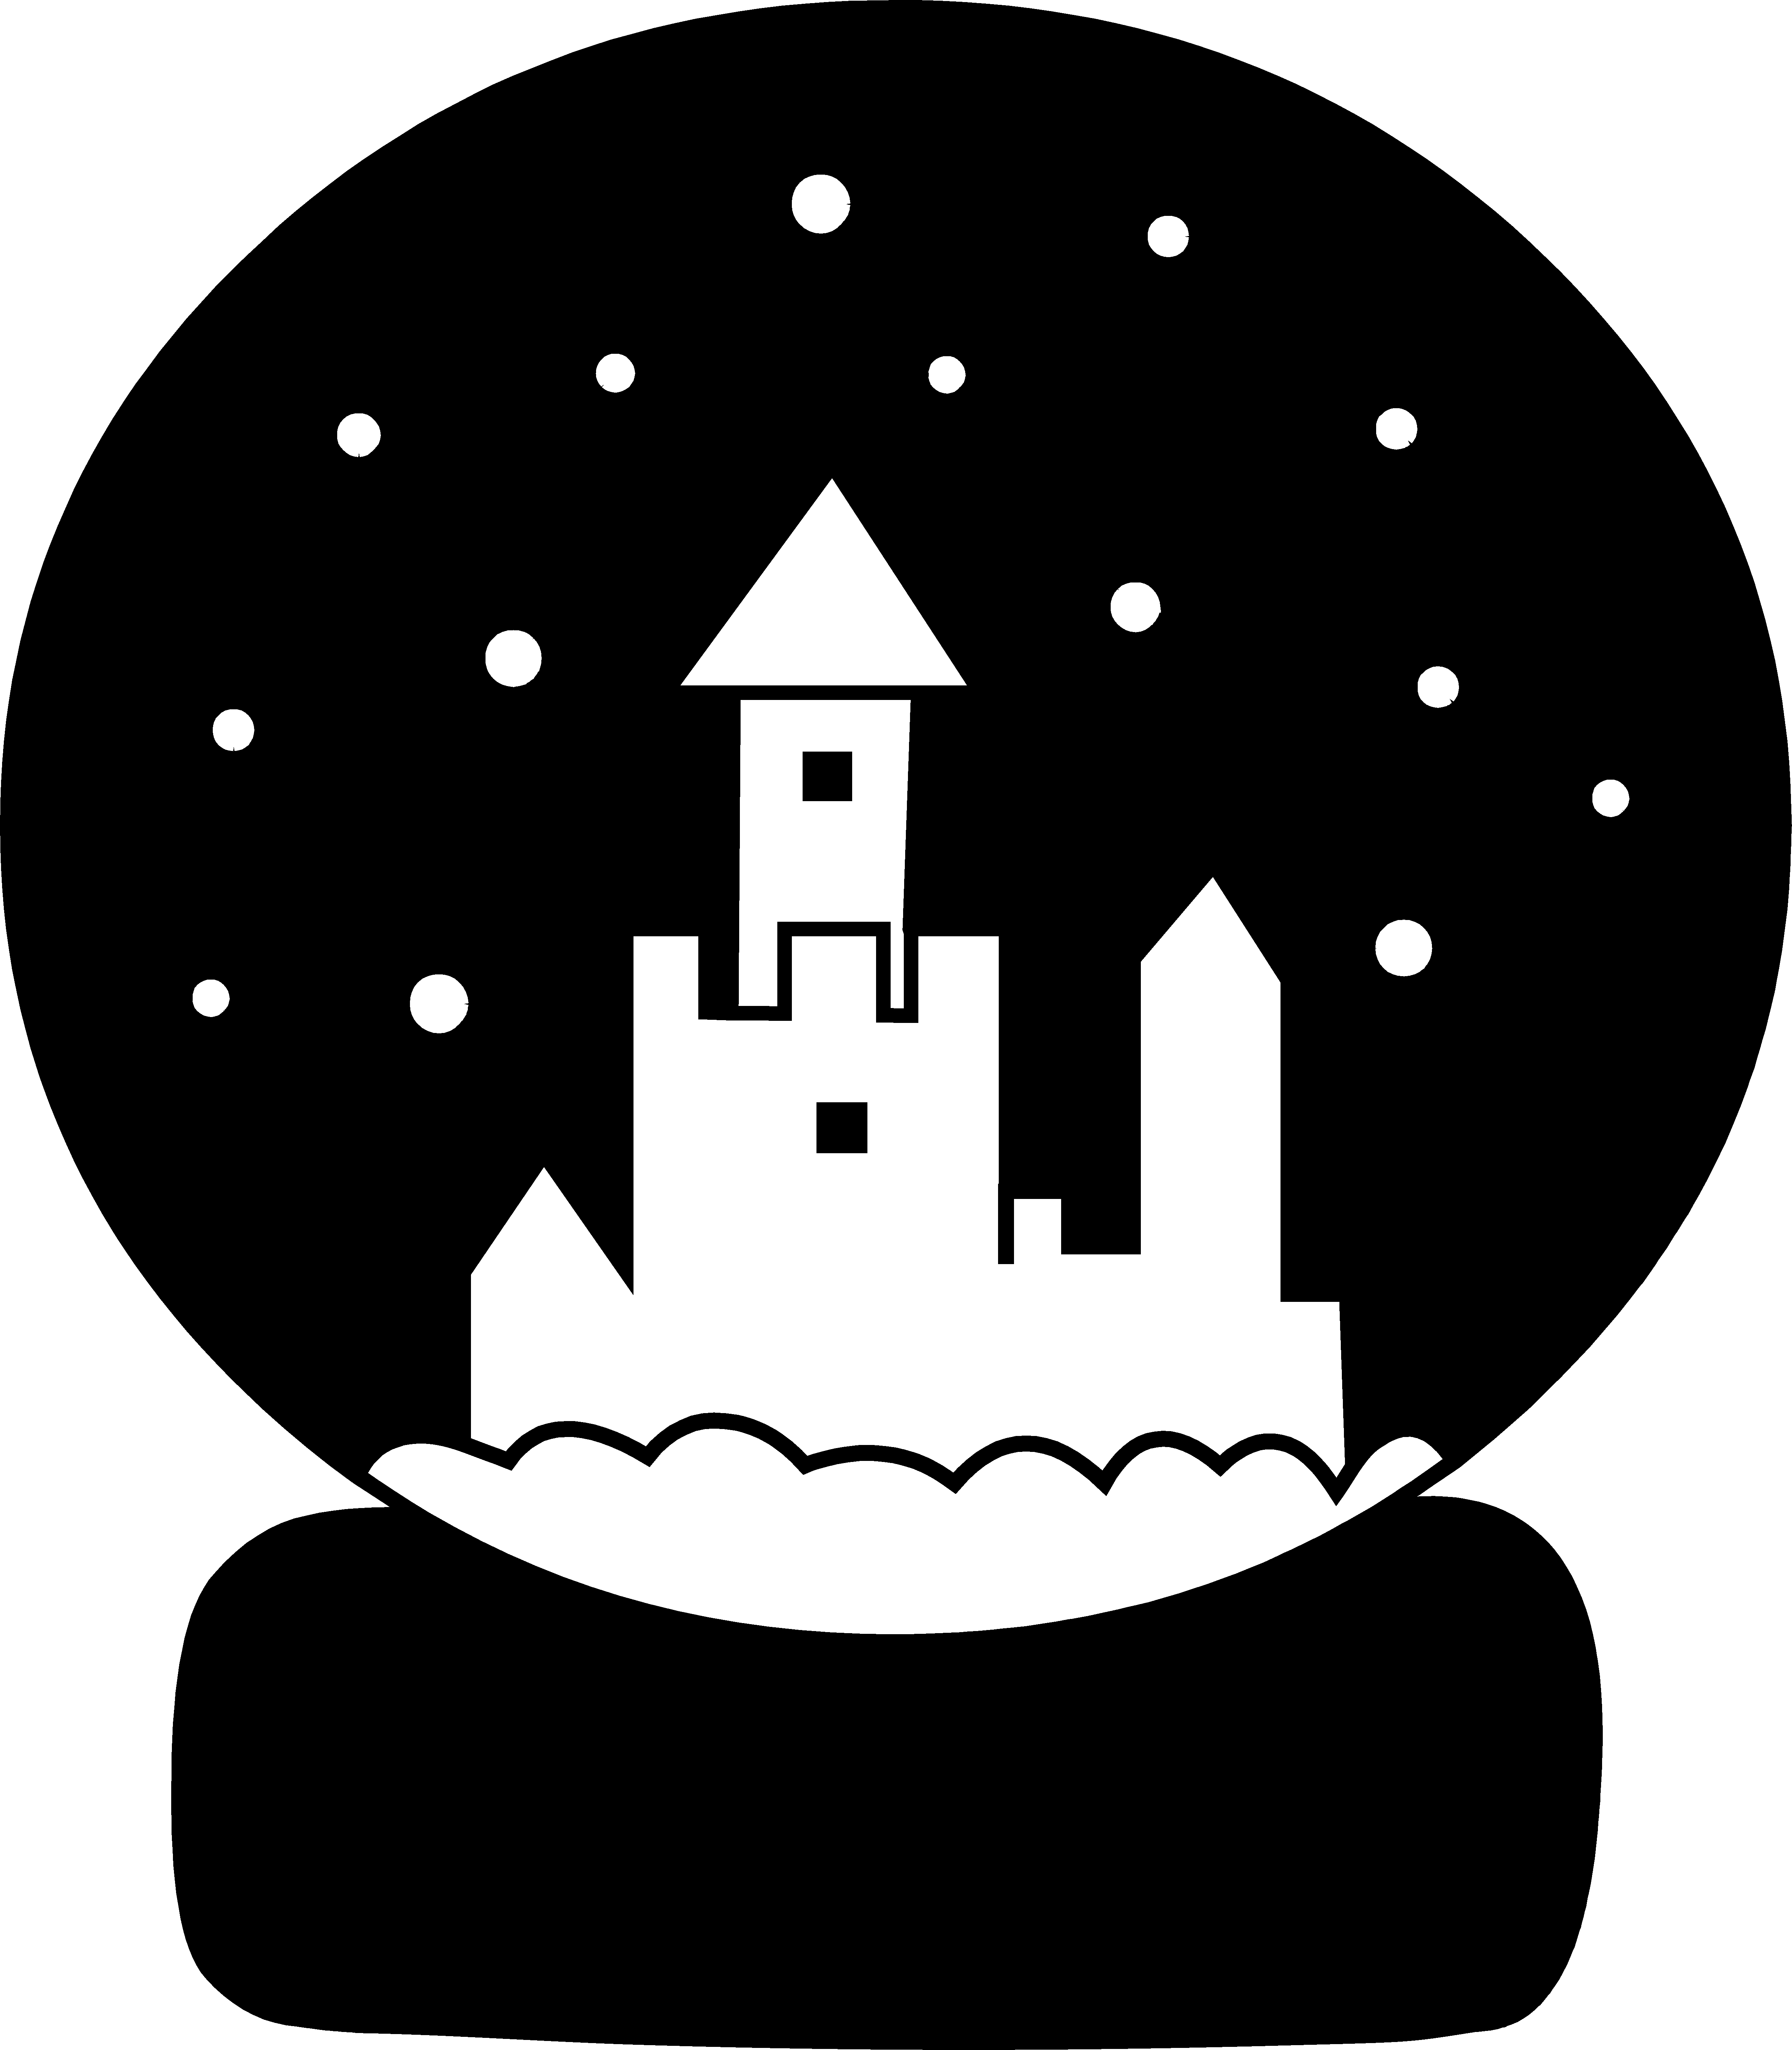 snow globe clipart black and white